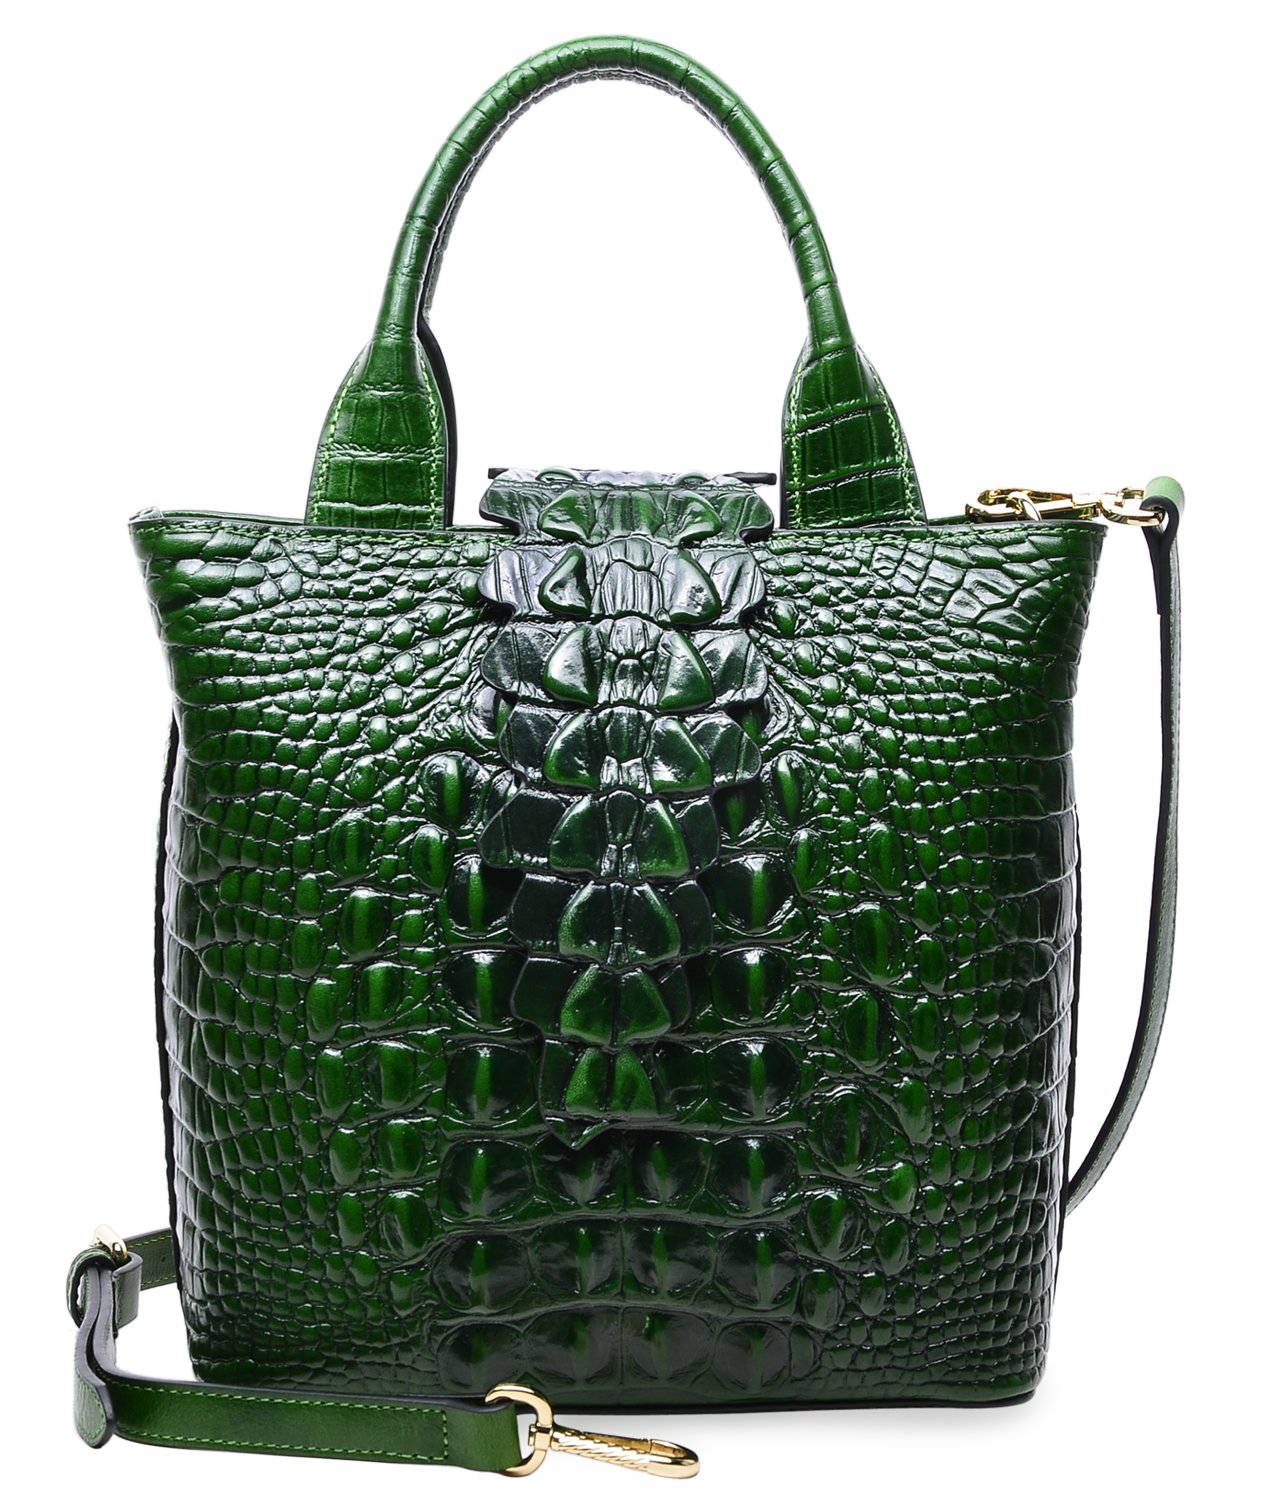 PIFUREN Designer Crocodile Embossed Leather Top Handle Satchel Handbags  Office E76061S(Small Size 493d0b51f94dc